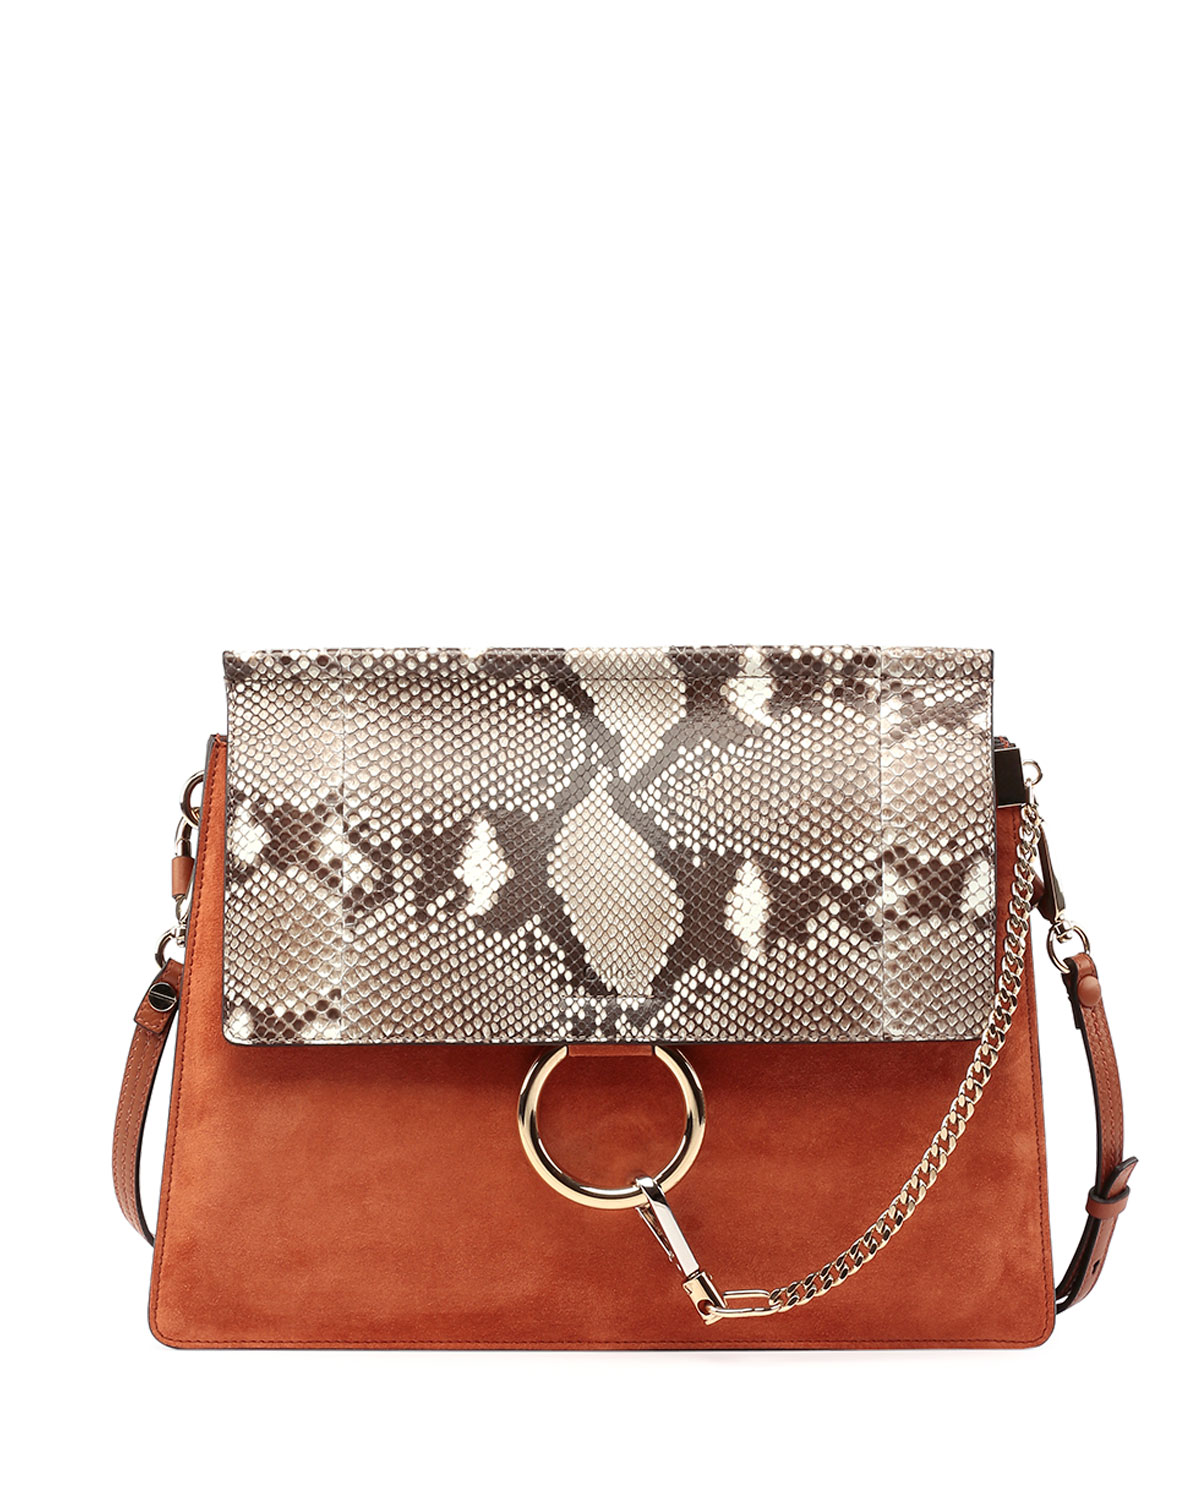 e0f9e5baf5d Chloe Faye Python-Pattern Leather & Suede Shoulder Bag | Neiman Marcus